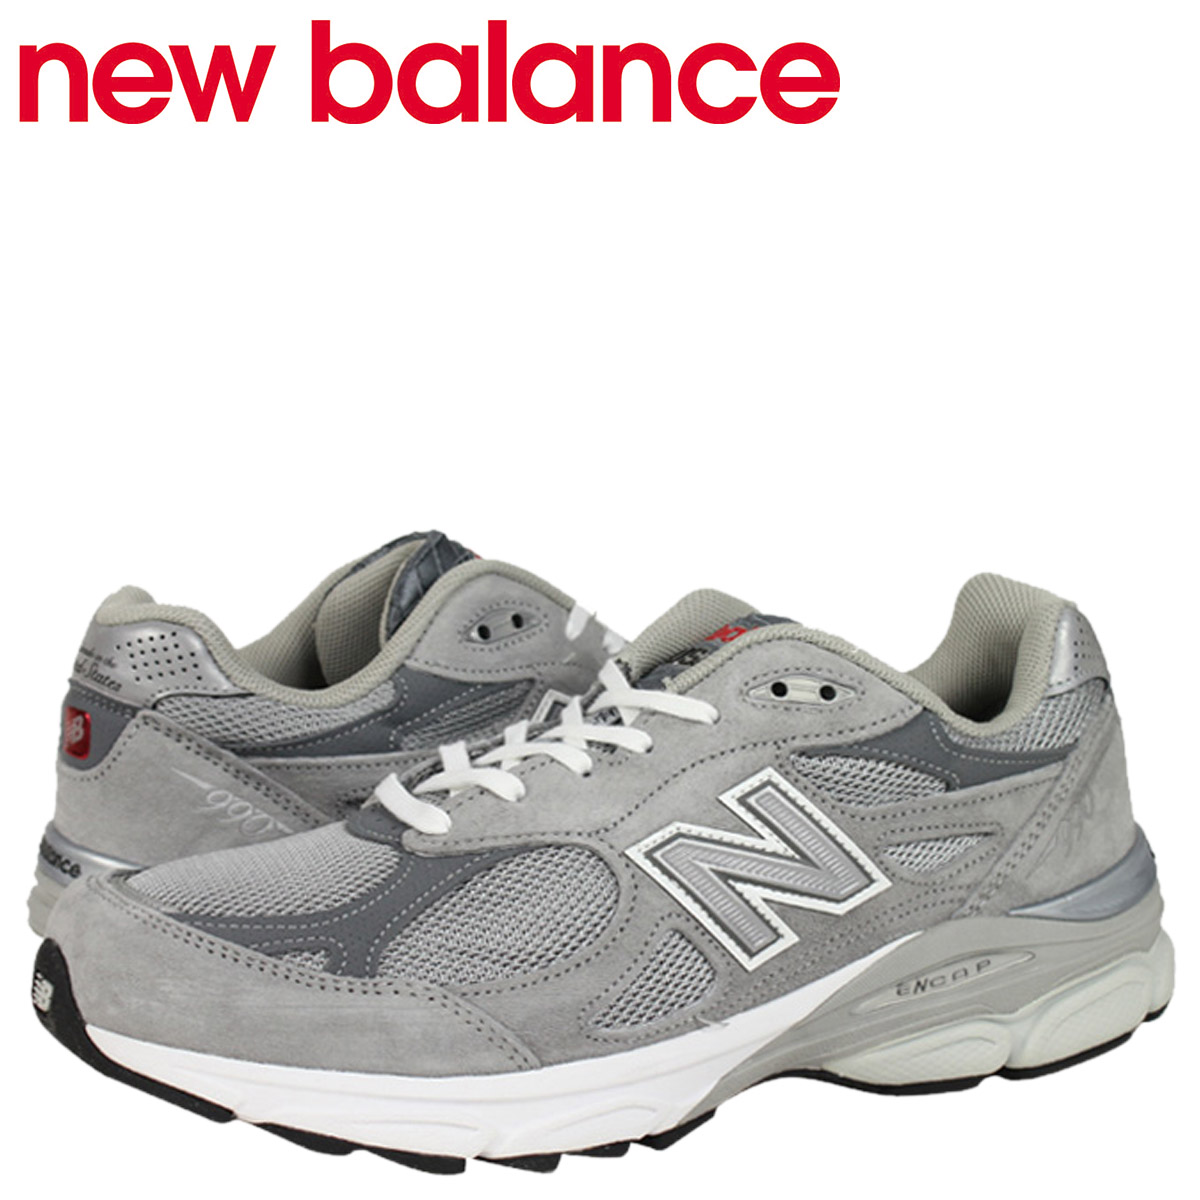 the best attitude 4ba31 8a623 new balance new balance 990 M990 GL3 MADE IN USA sneaker M990GL3 D wise  men's shoes grey